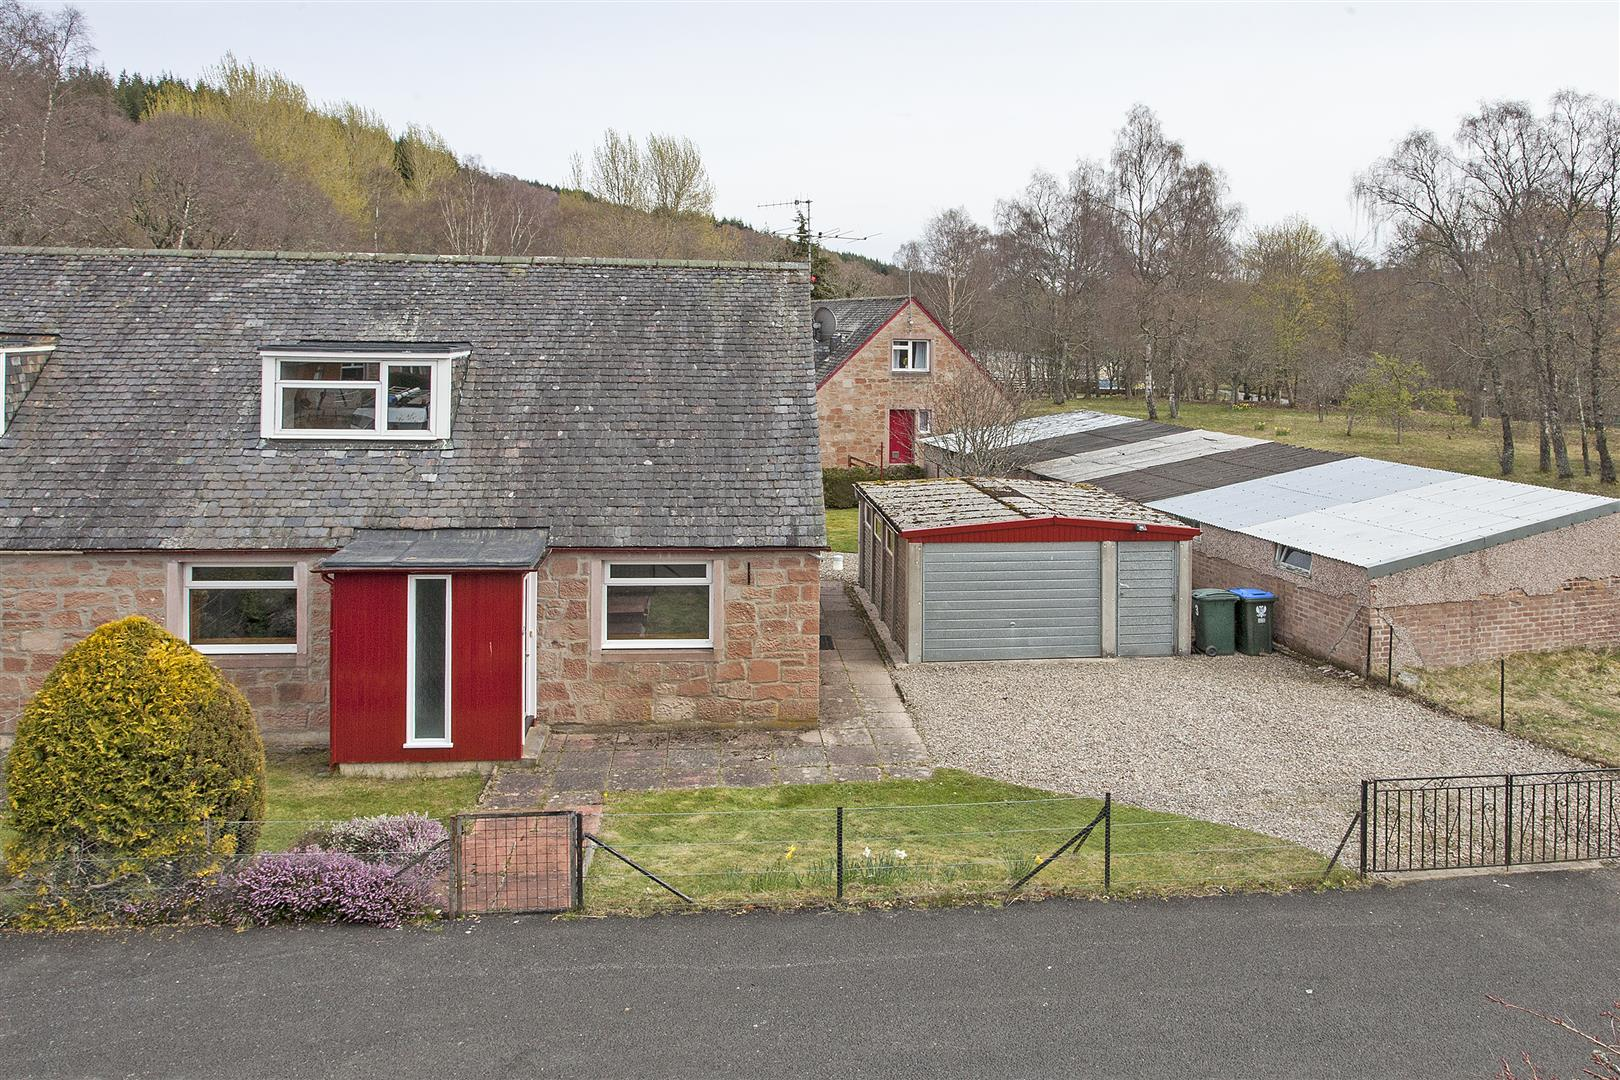 3, Dalcroy Crescent, Tummel Bridge, Pitlochry, Perthshire, PH16 5NU, UK